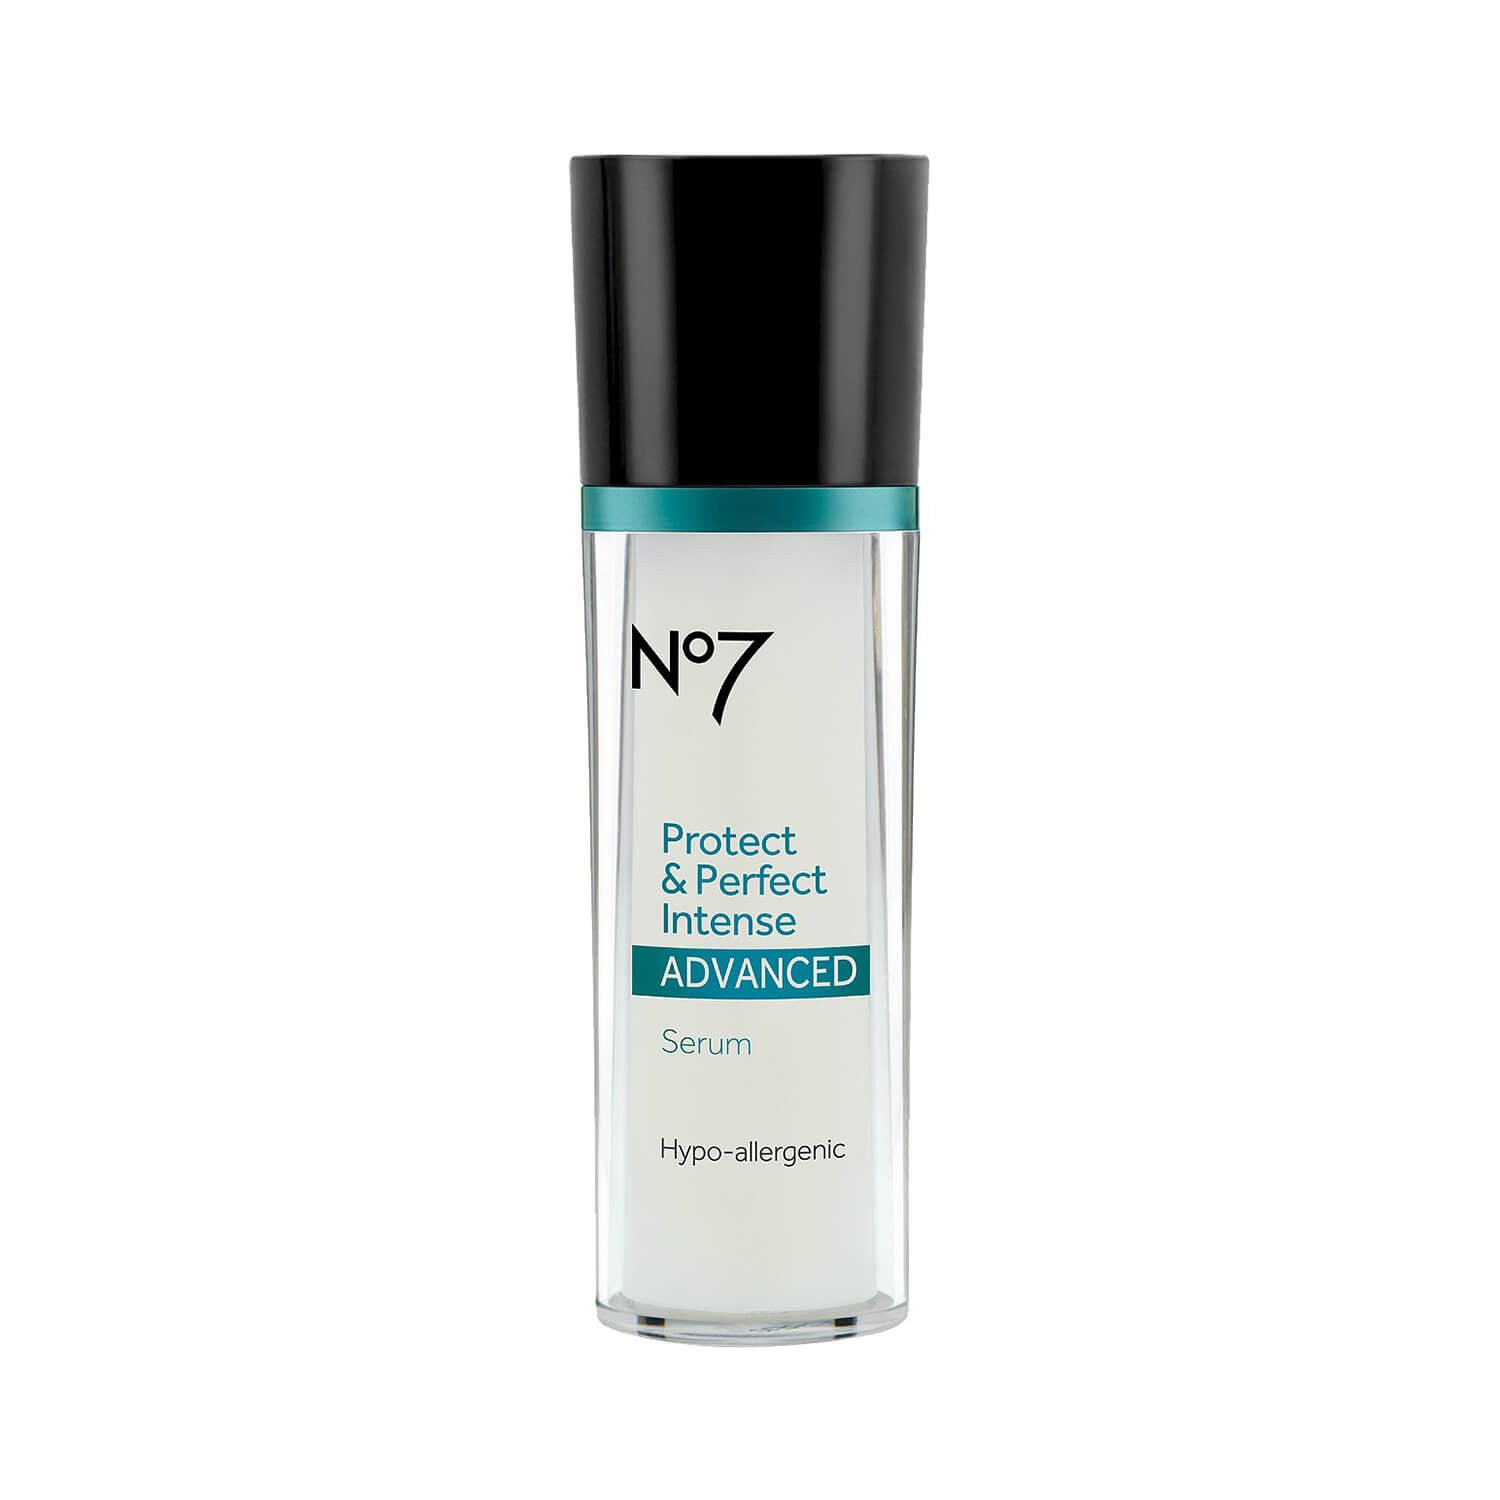 Boots no7 protect & perfect intense serum